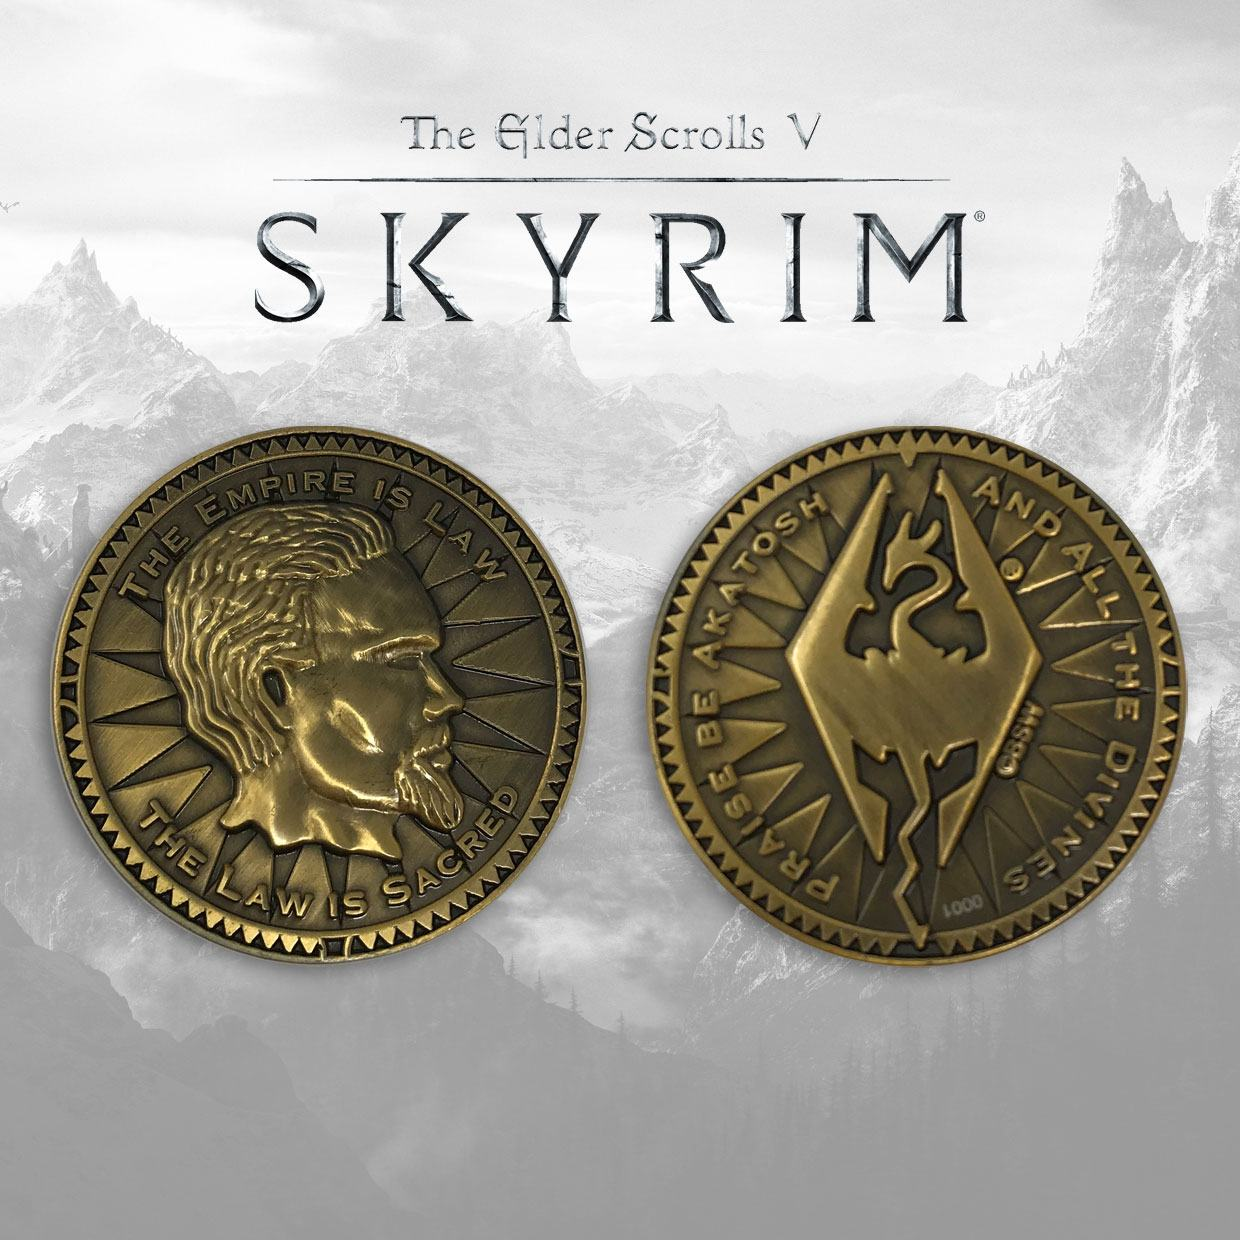 The Elder Scrolls V: Skyrim Collectable Coin The Empire Is Law